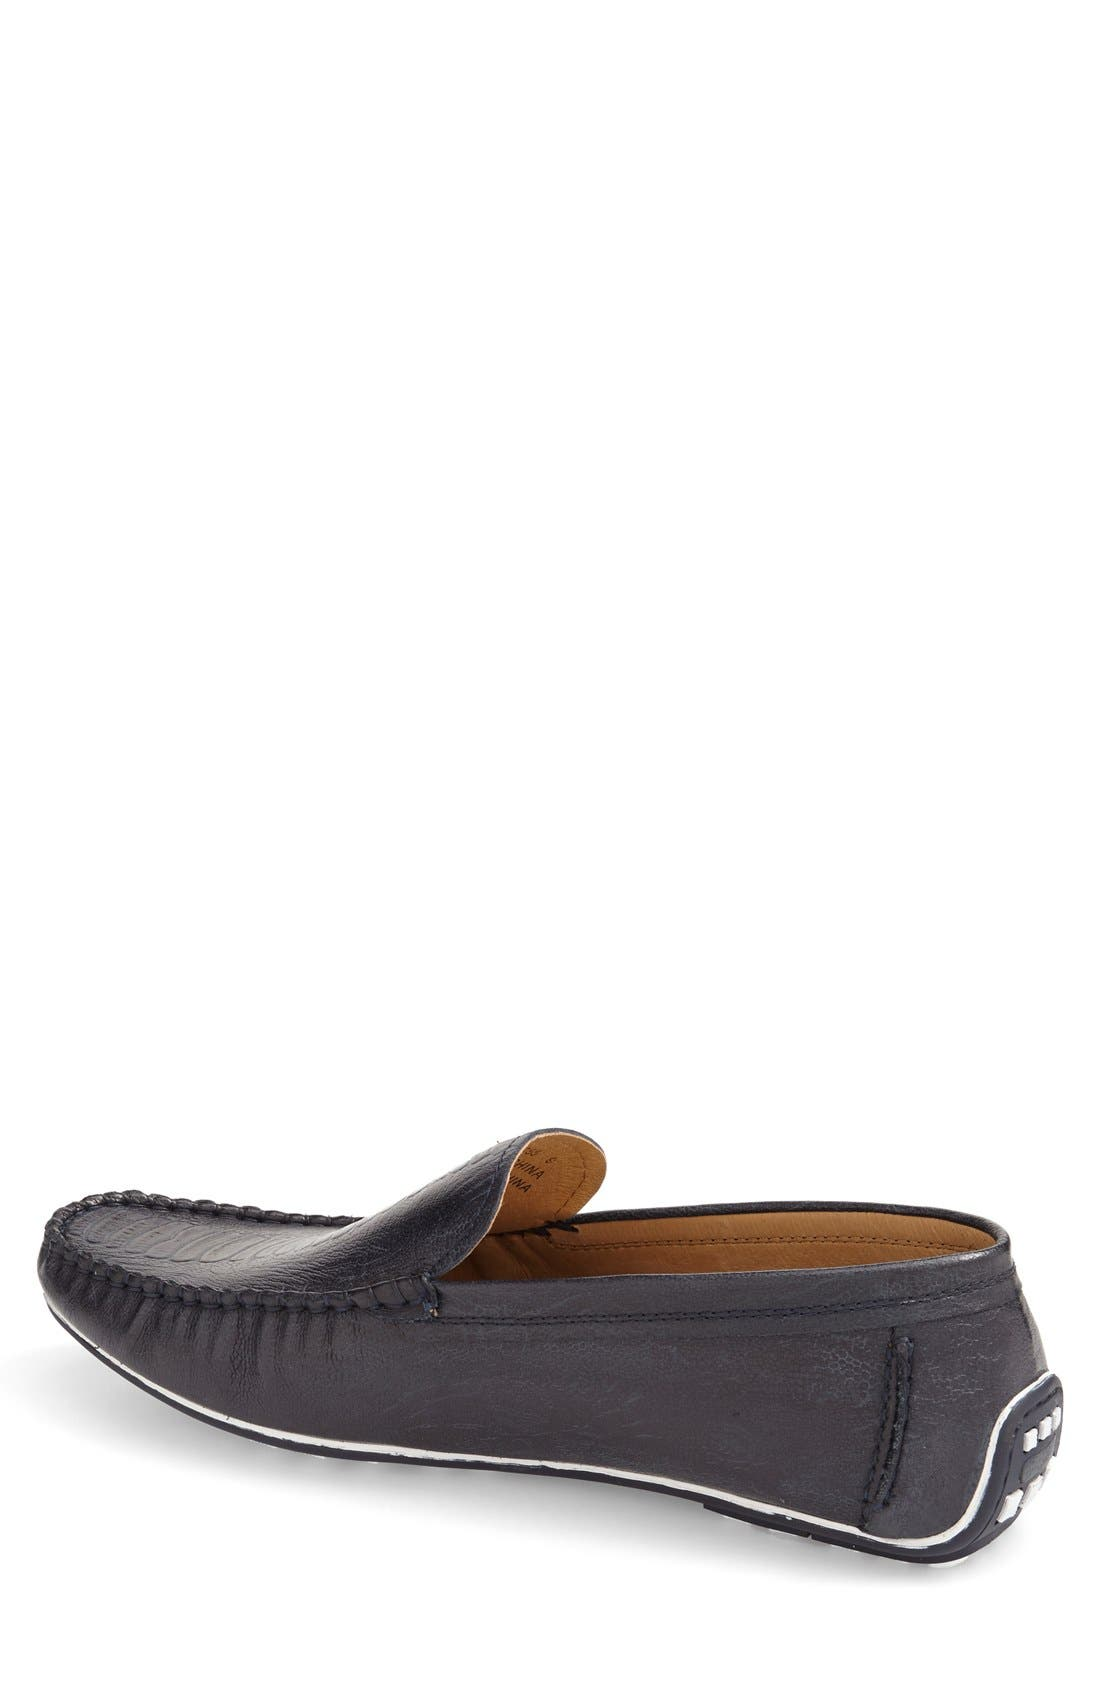 Alternate Image 3  - Zanzara 'Rembrandt' Driving Loafer (Men)